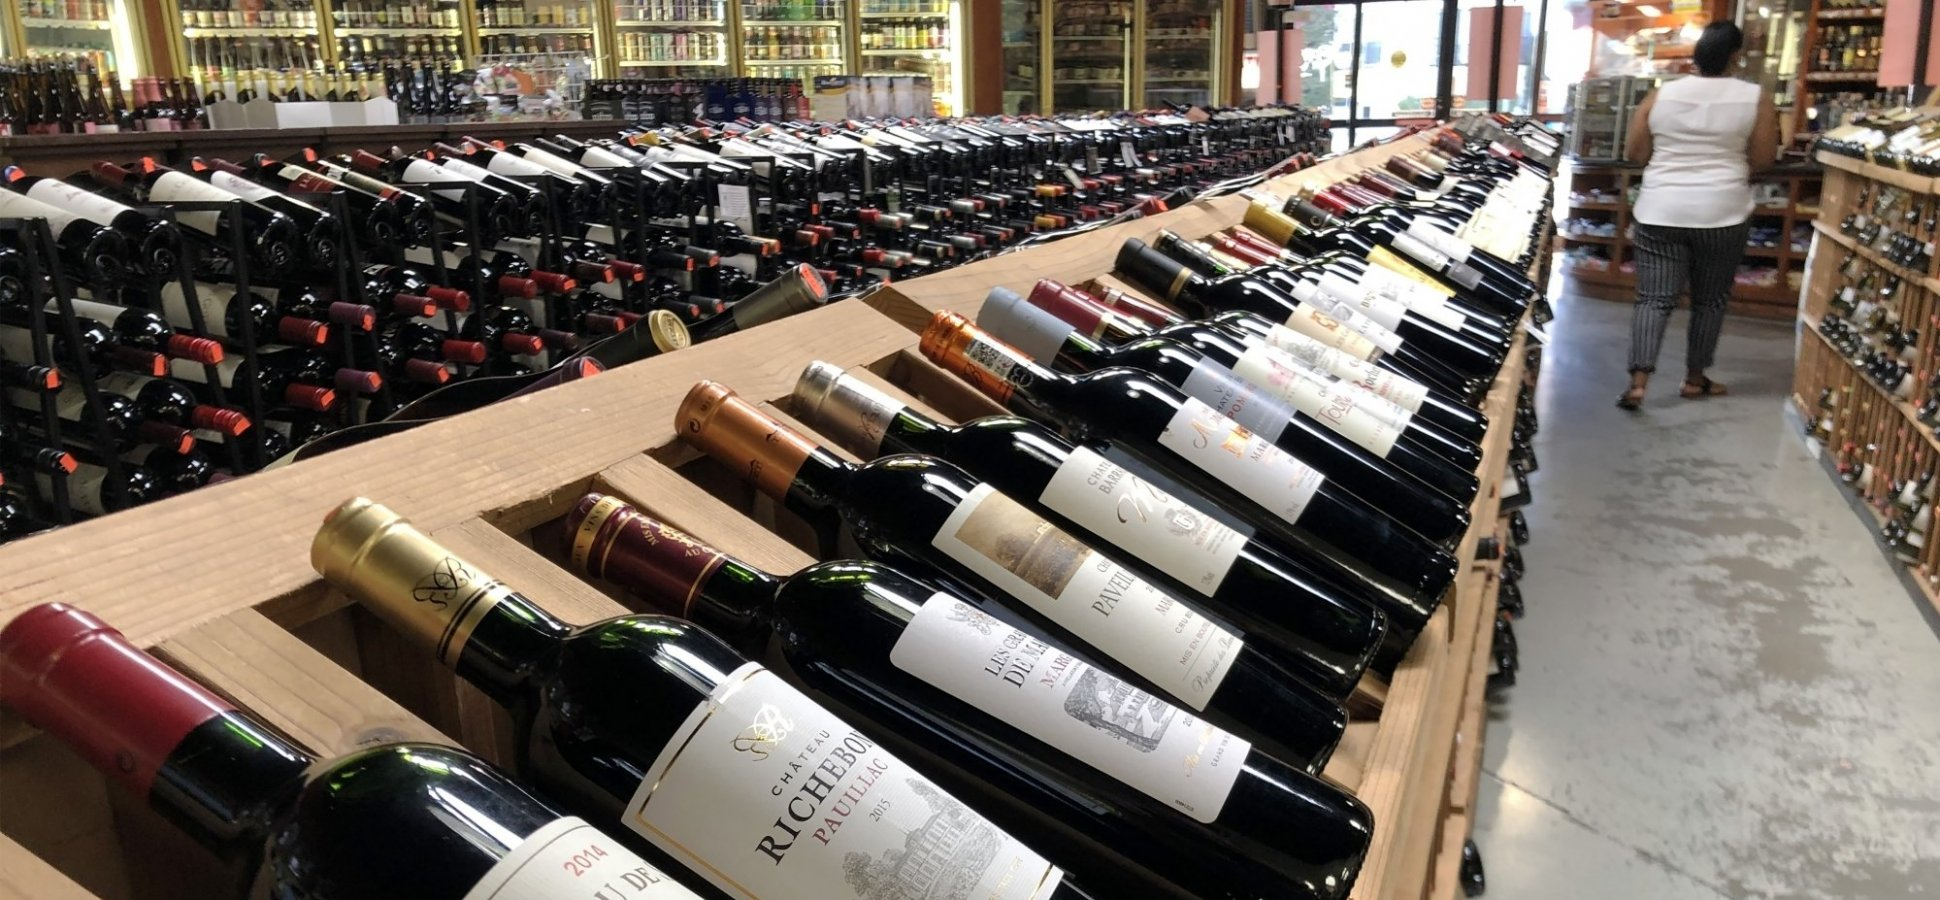 New Tariffs on Wine, Liquor, and Cheese Come at a Troubling Time for Small Retailers